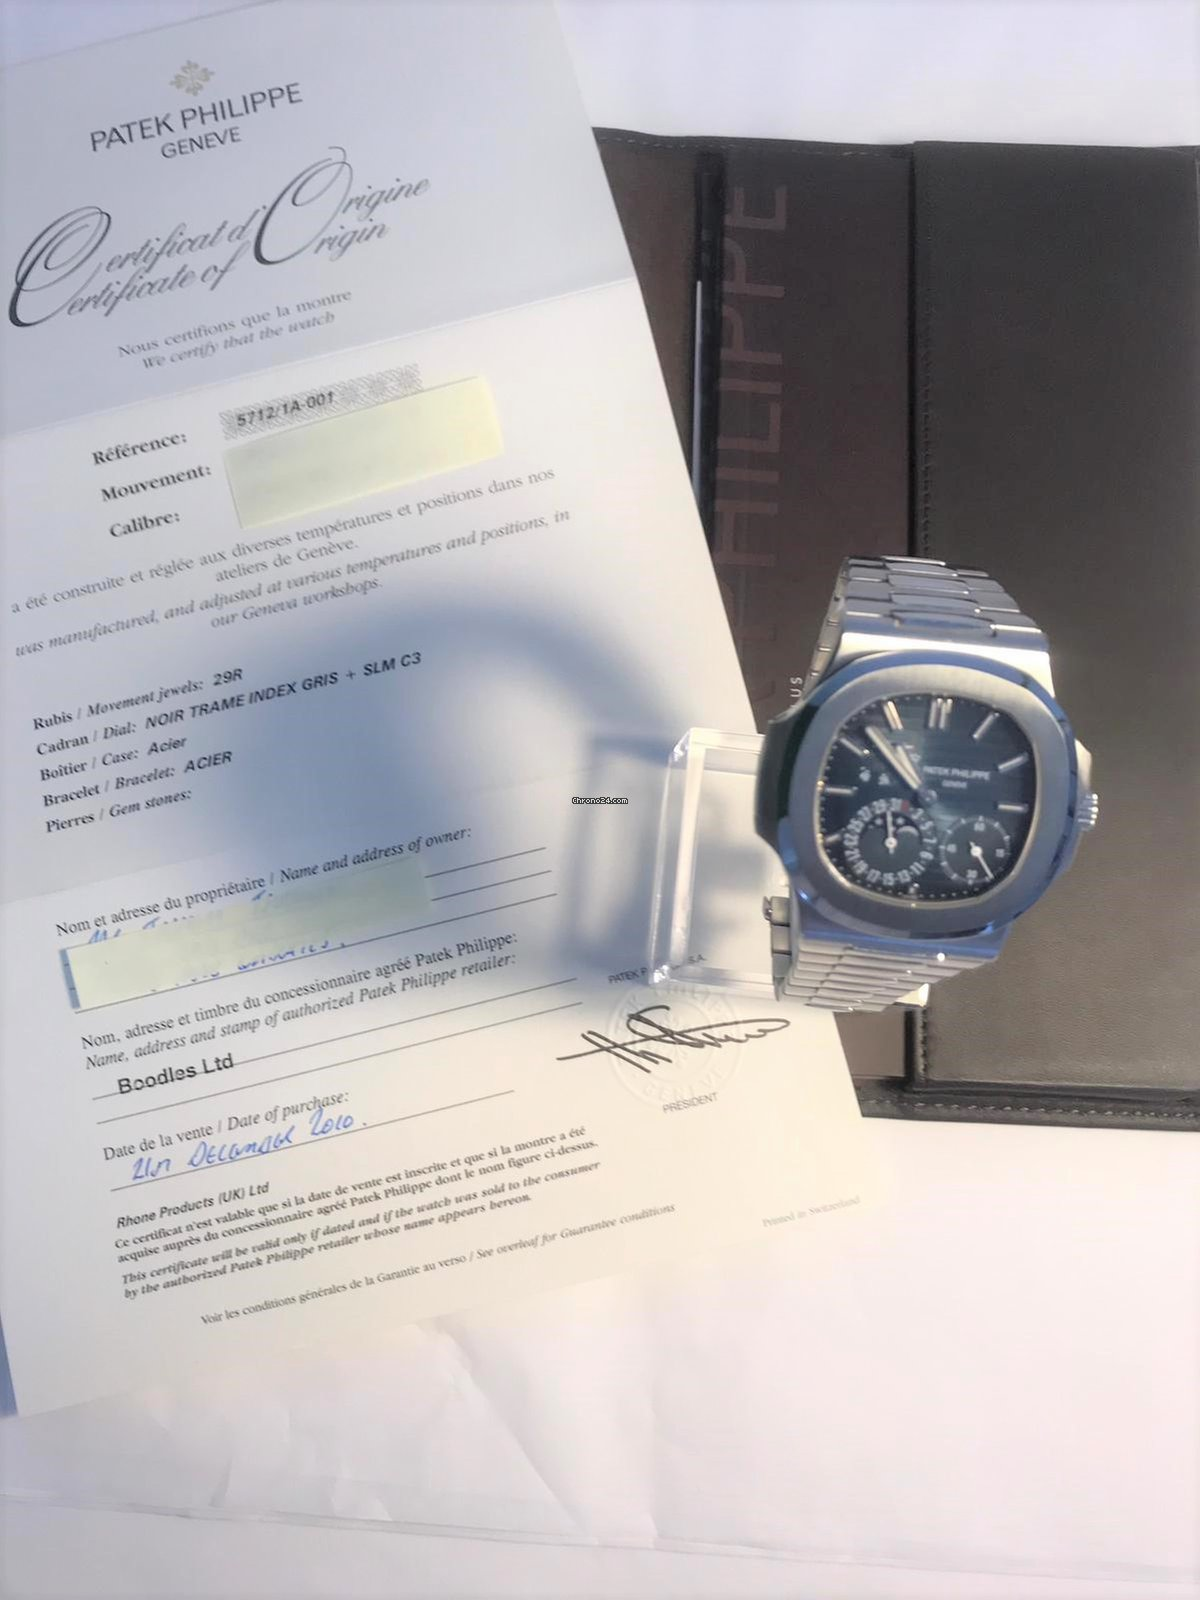 cebbd8089a6 Patek Philippe Nautilus for Rp. 1,149,901,184 for sale from a Trusted  Seller on Chrono24